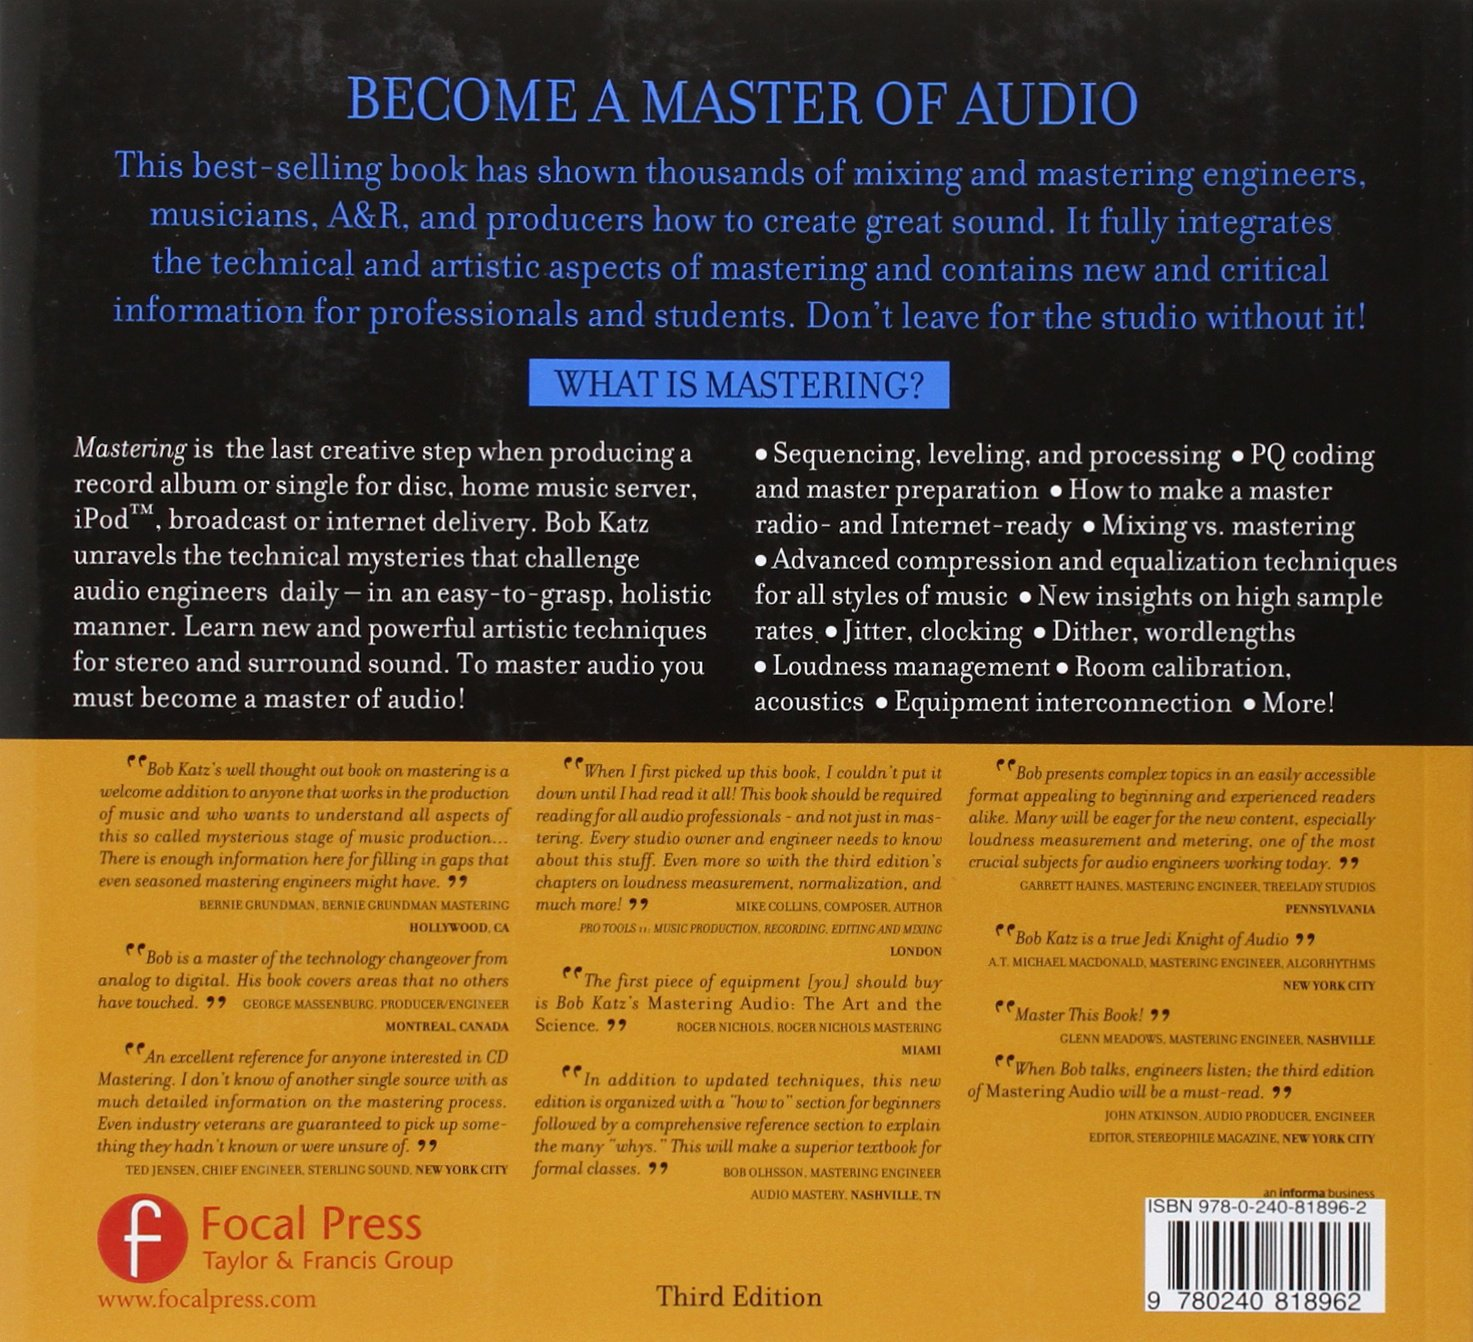 Mastering audio the art and the science livros na amazon brasil mastering audio the art and the science livros na amazon brasil 8601404985119 fandeluxe Gallery